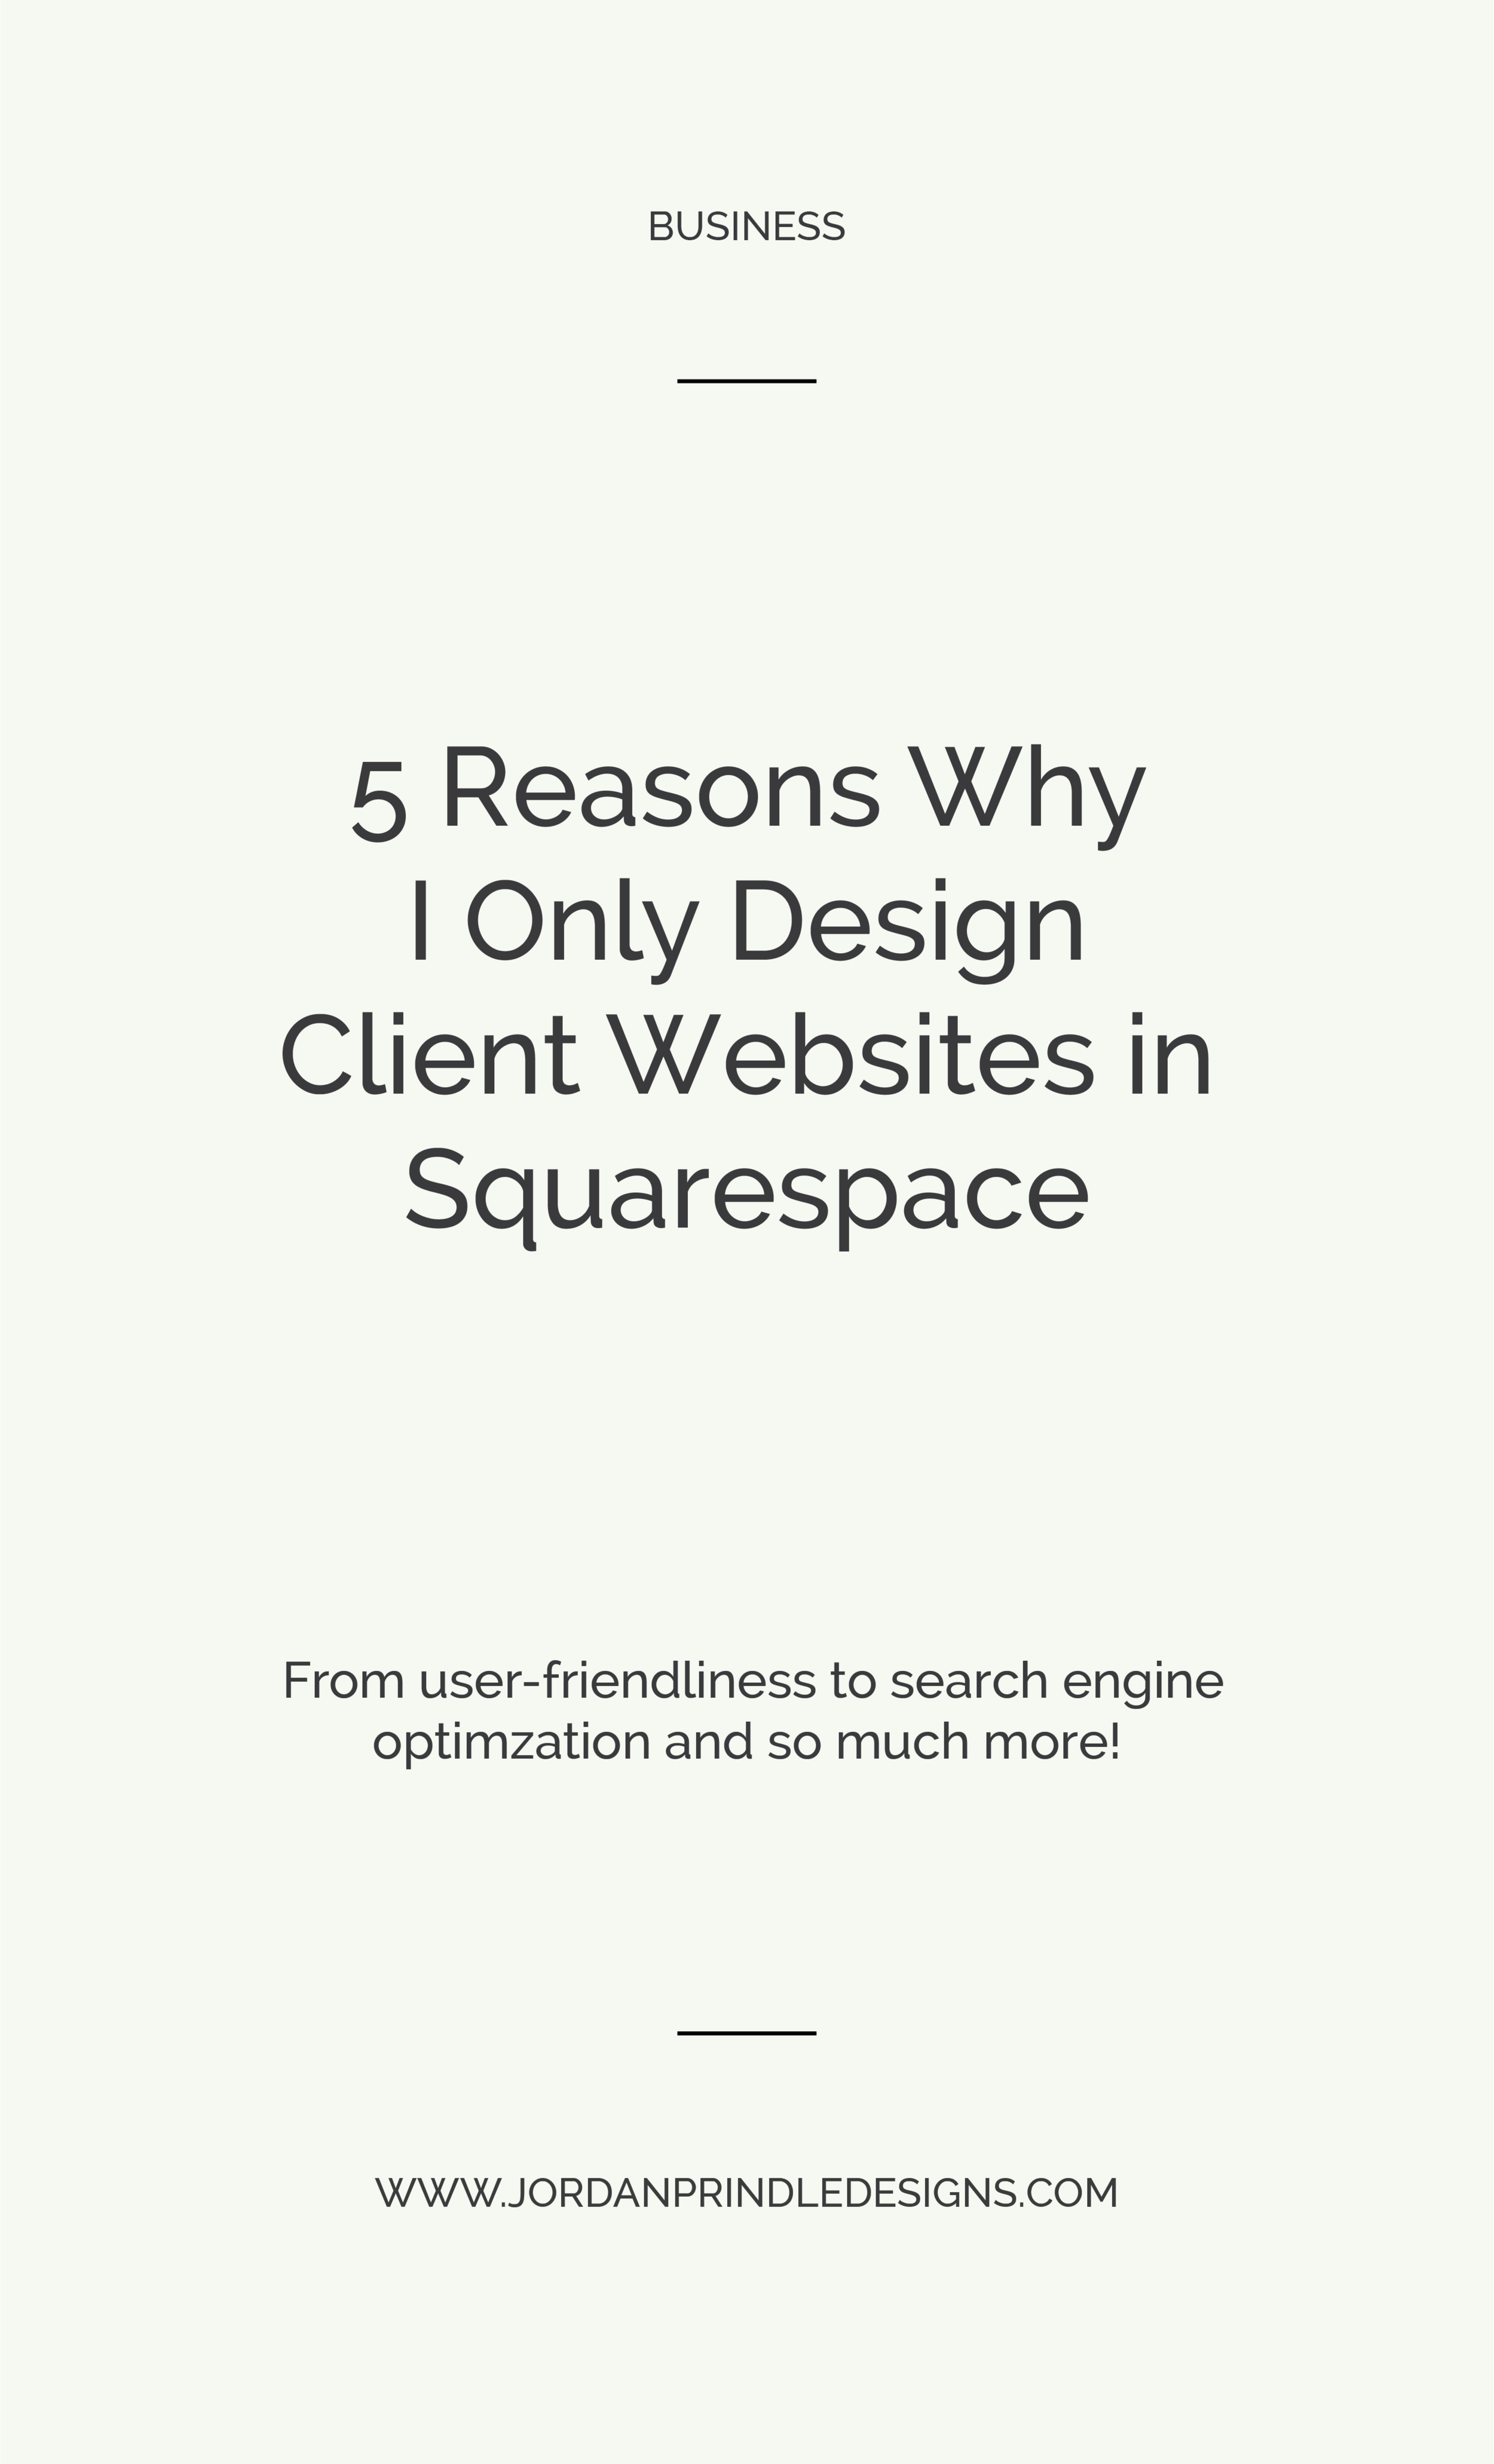 5 Reasons Why I Only Design Client Websites in Squarespace | Learn why I love designing custom #websites in Squarespace for all my #smallbusiness clients at www.jordanprindledesigns.com #logo #branding #squarespace